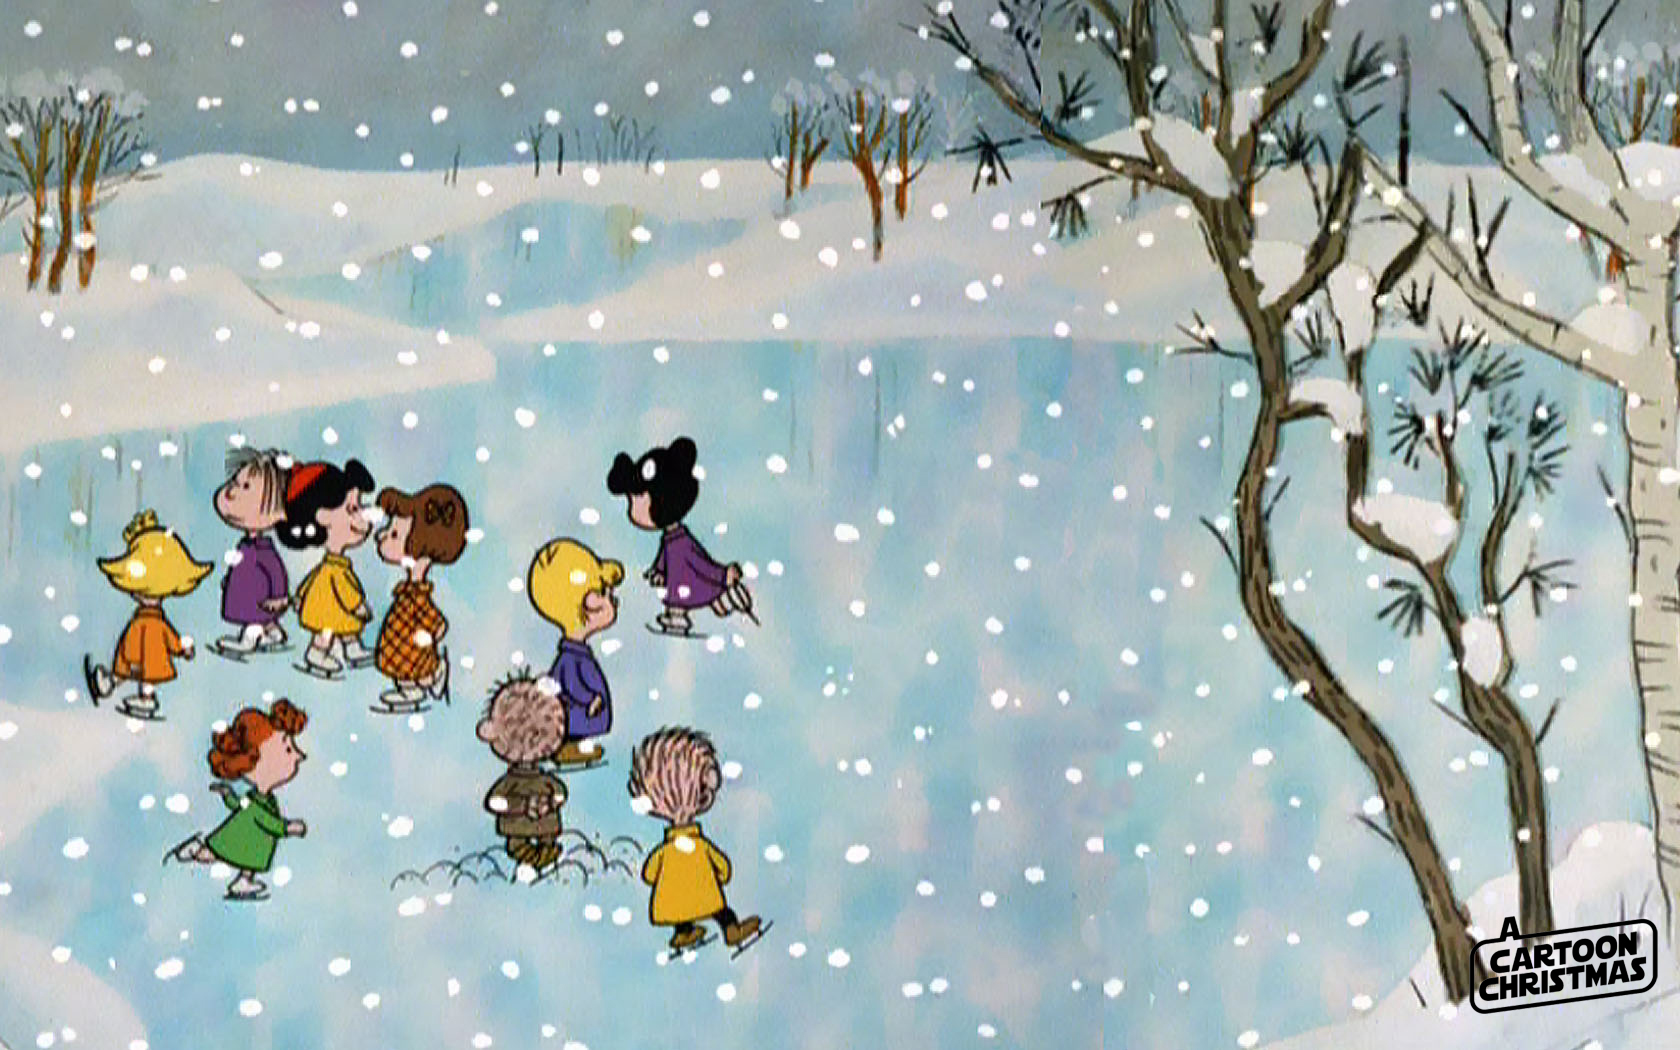 Charlie Brown Chrismas Wallpapers right here    A Cartoon Christmas 1680x1050